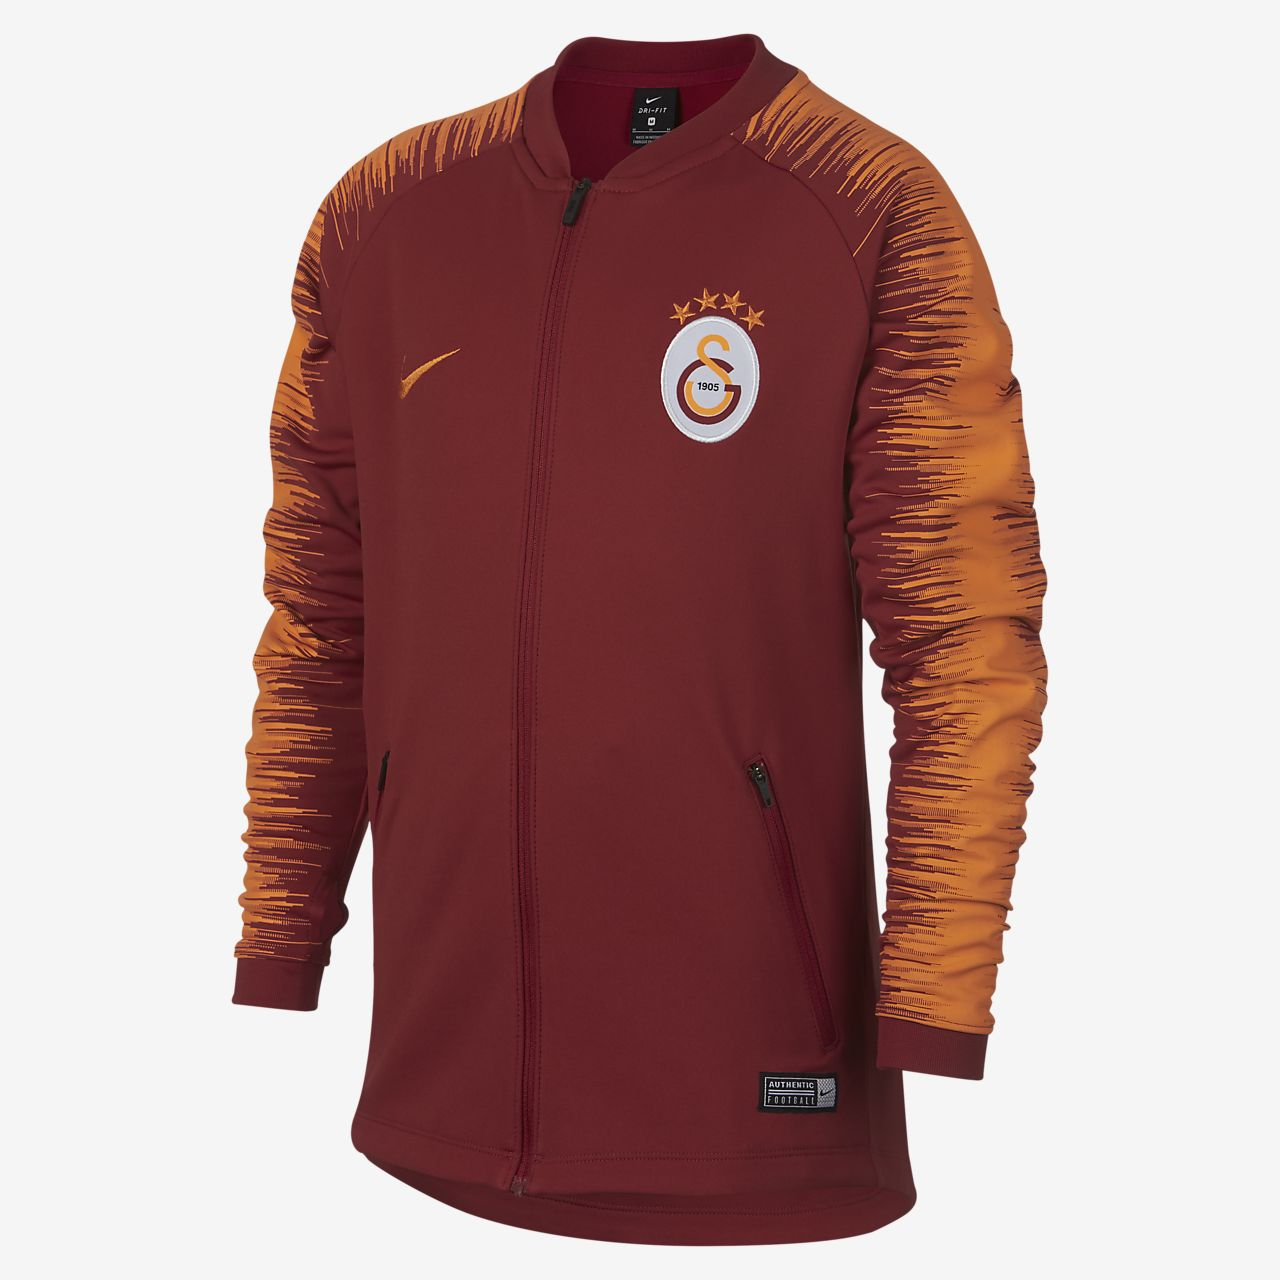 Galatasaray S.K. Anthem Older Kids' Football Jacket